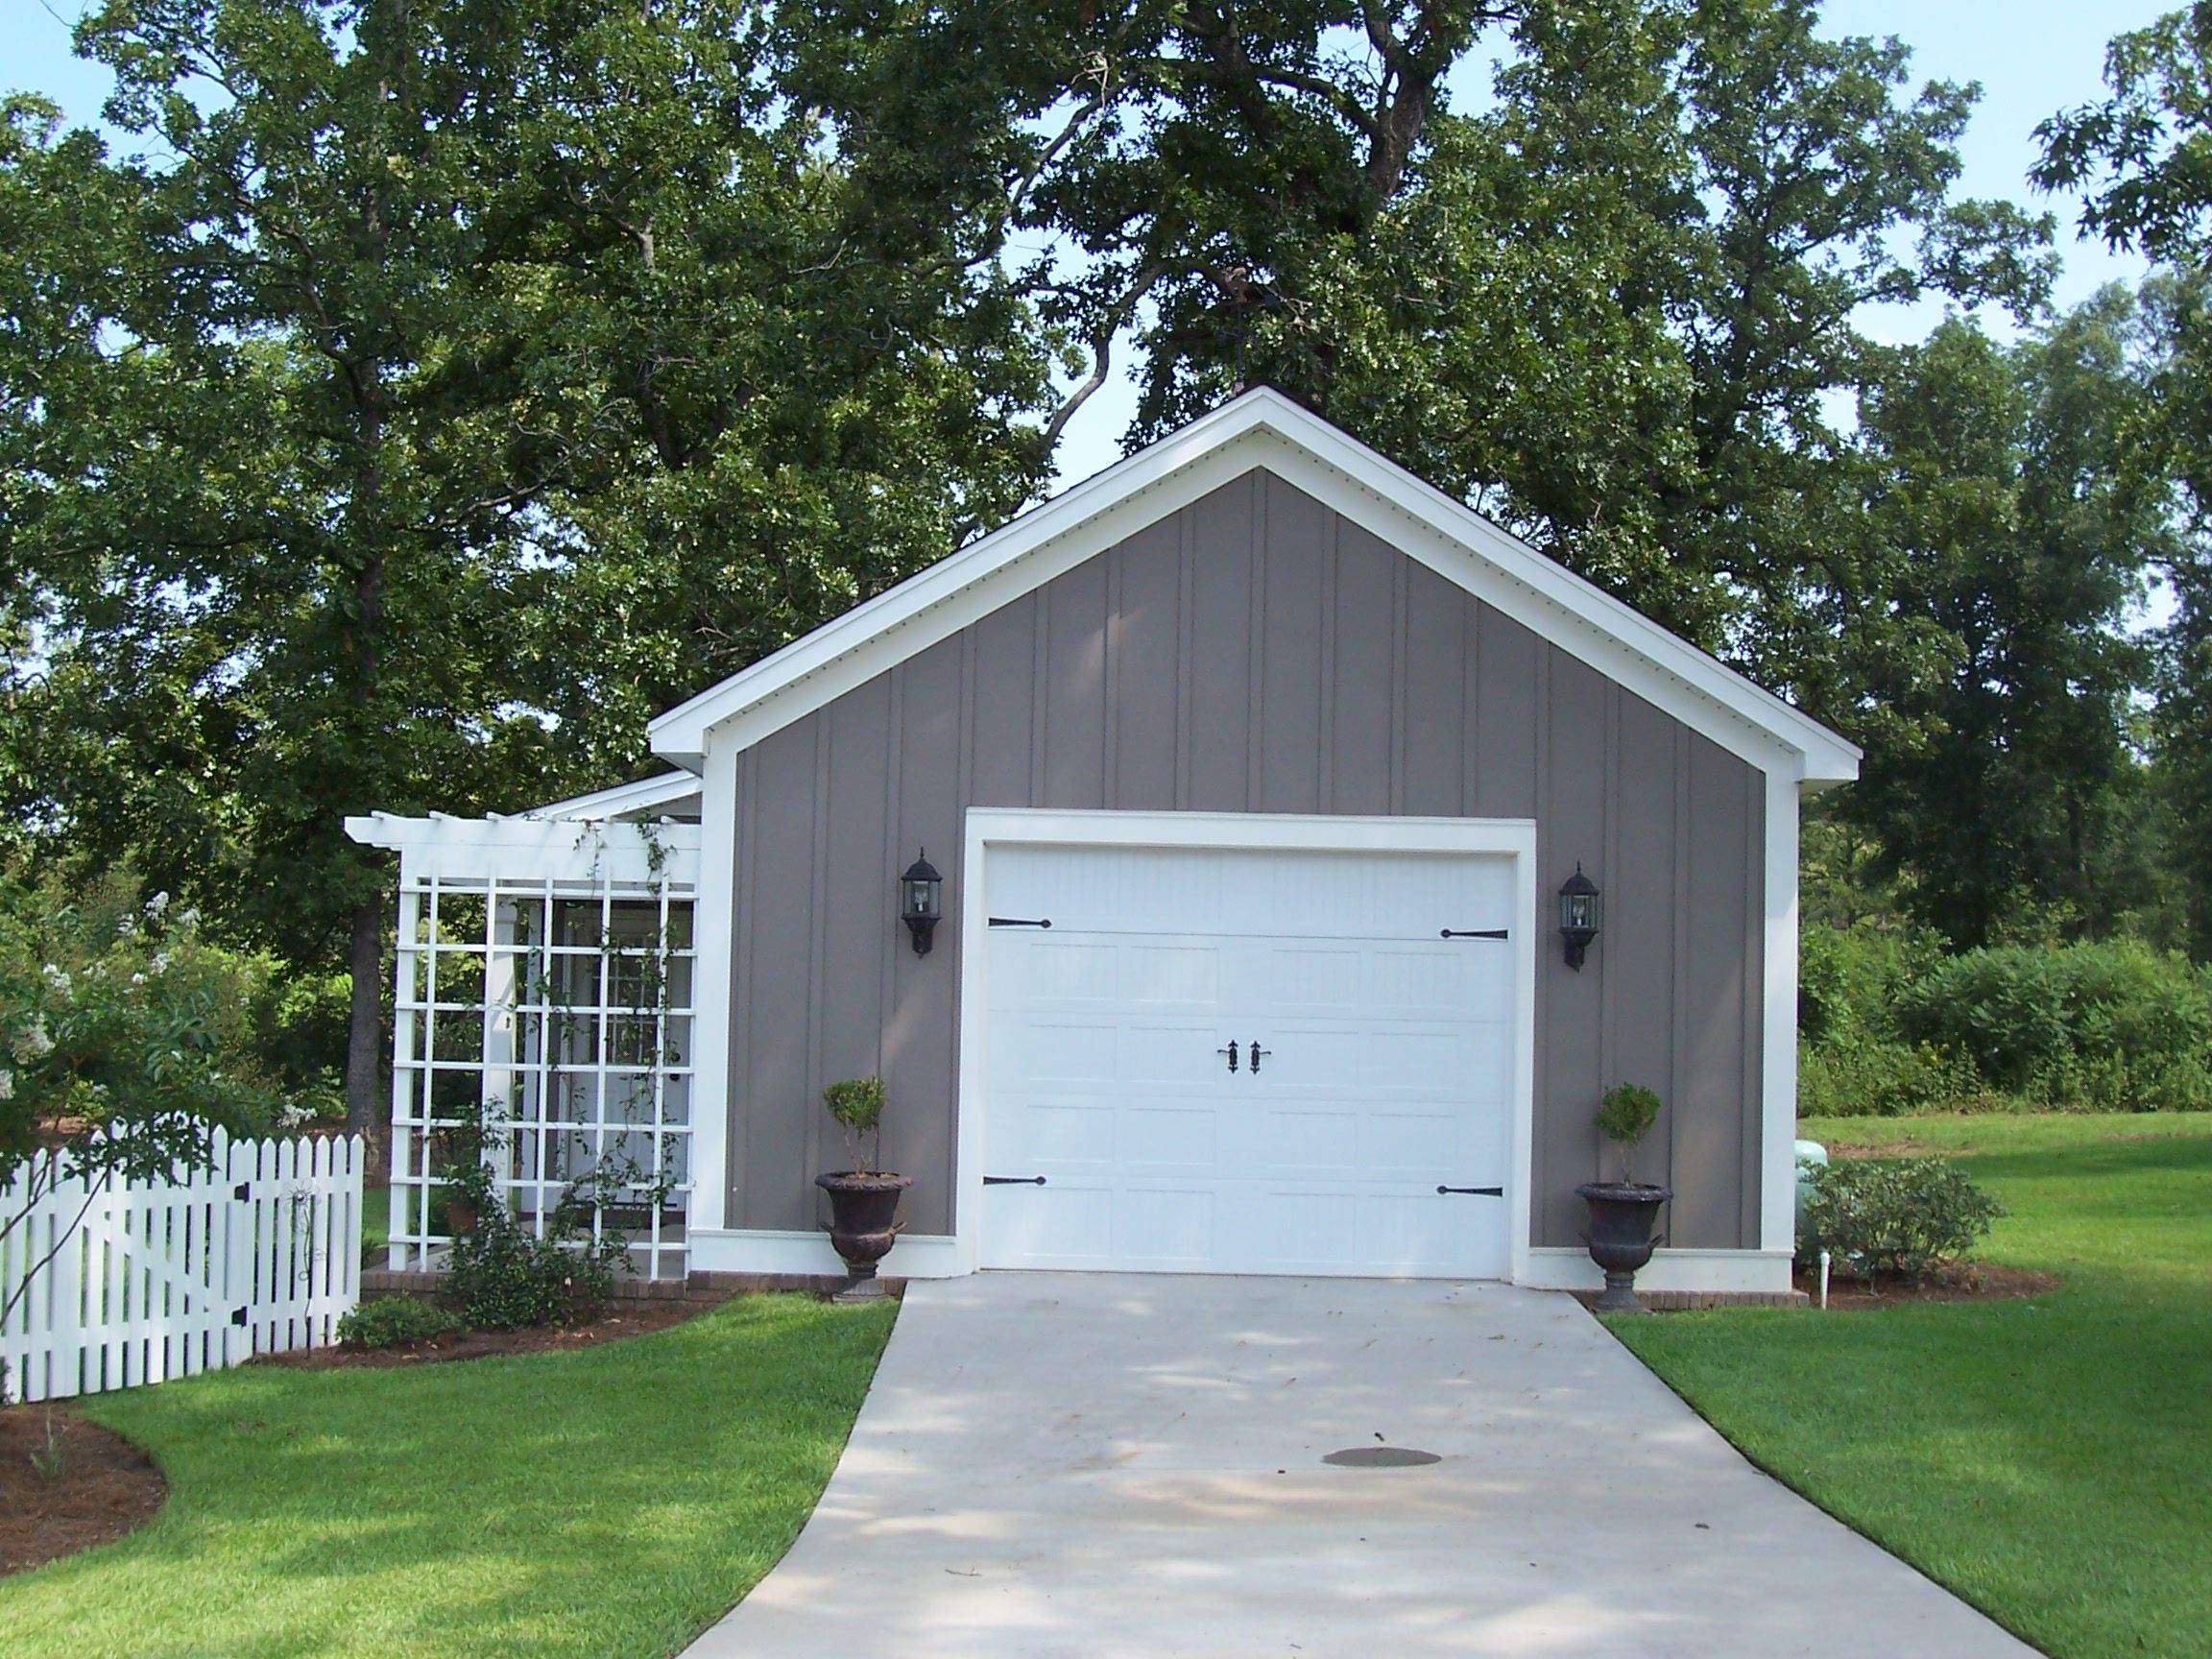 13 genius garage plans with porch architecture plans 6256 for Porch garage